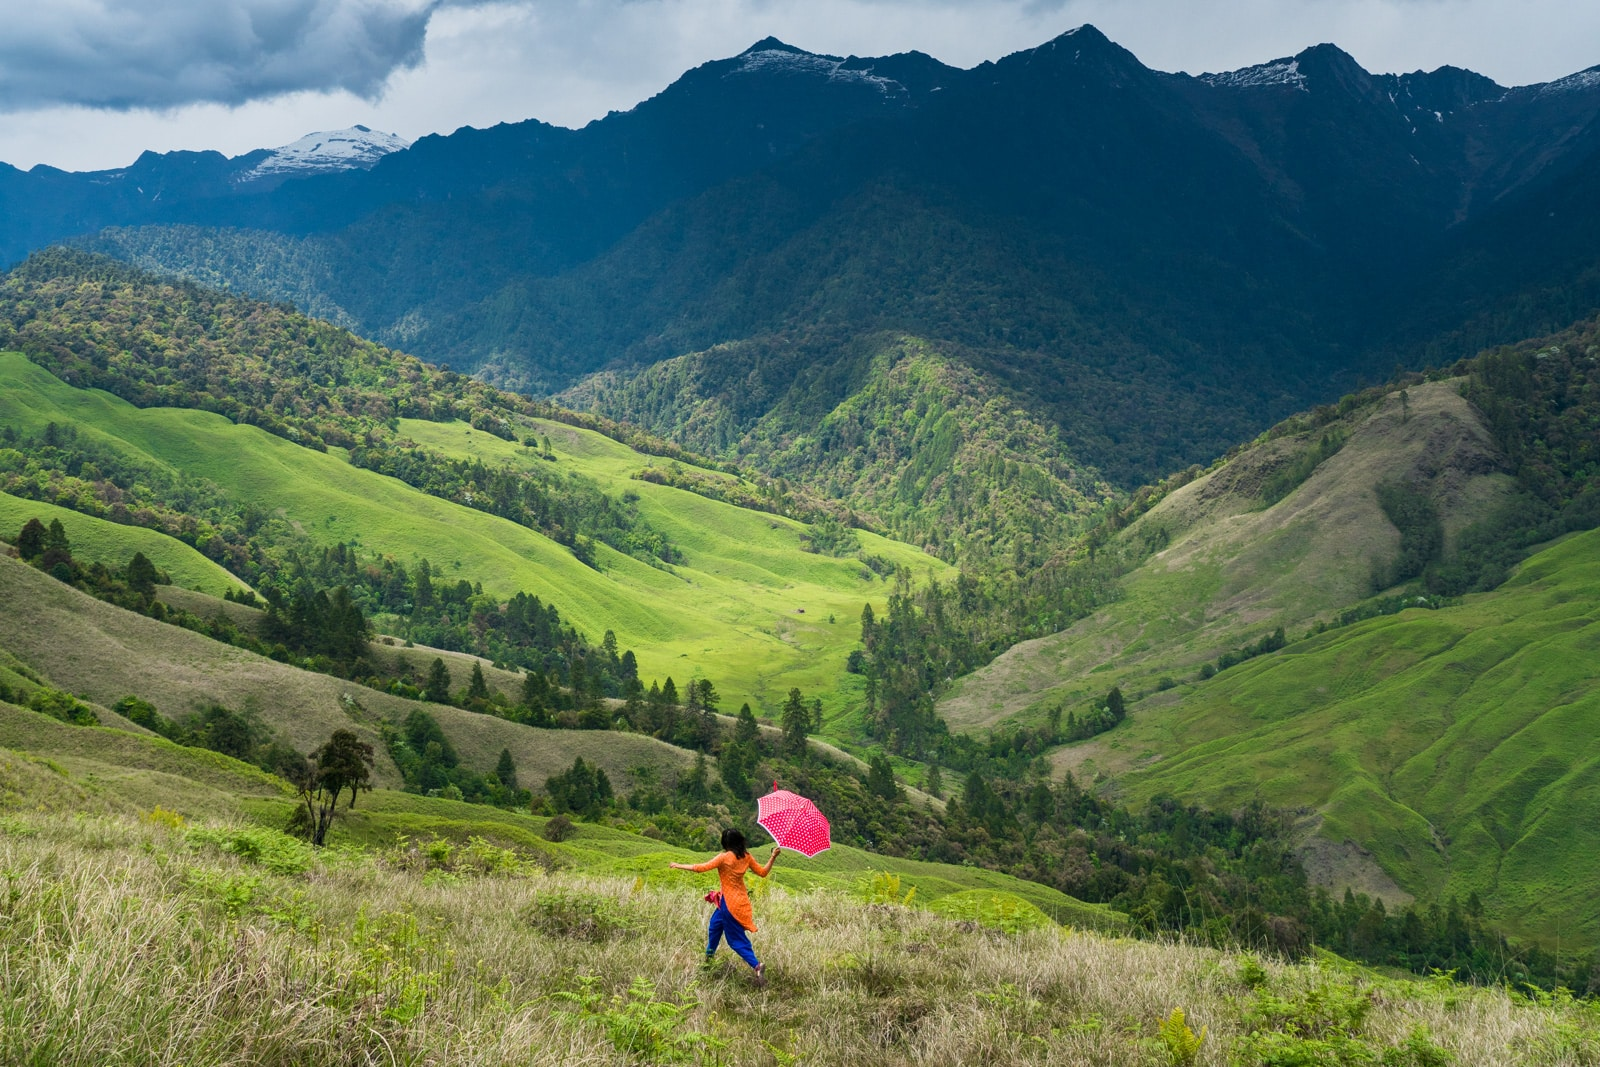 What is Lost With Purpose - Alex running through the mountains of Mechuka in Arunachal Pradesh, India